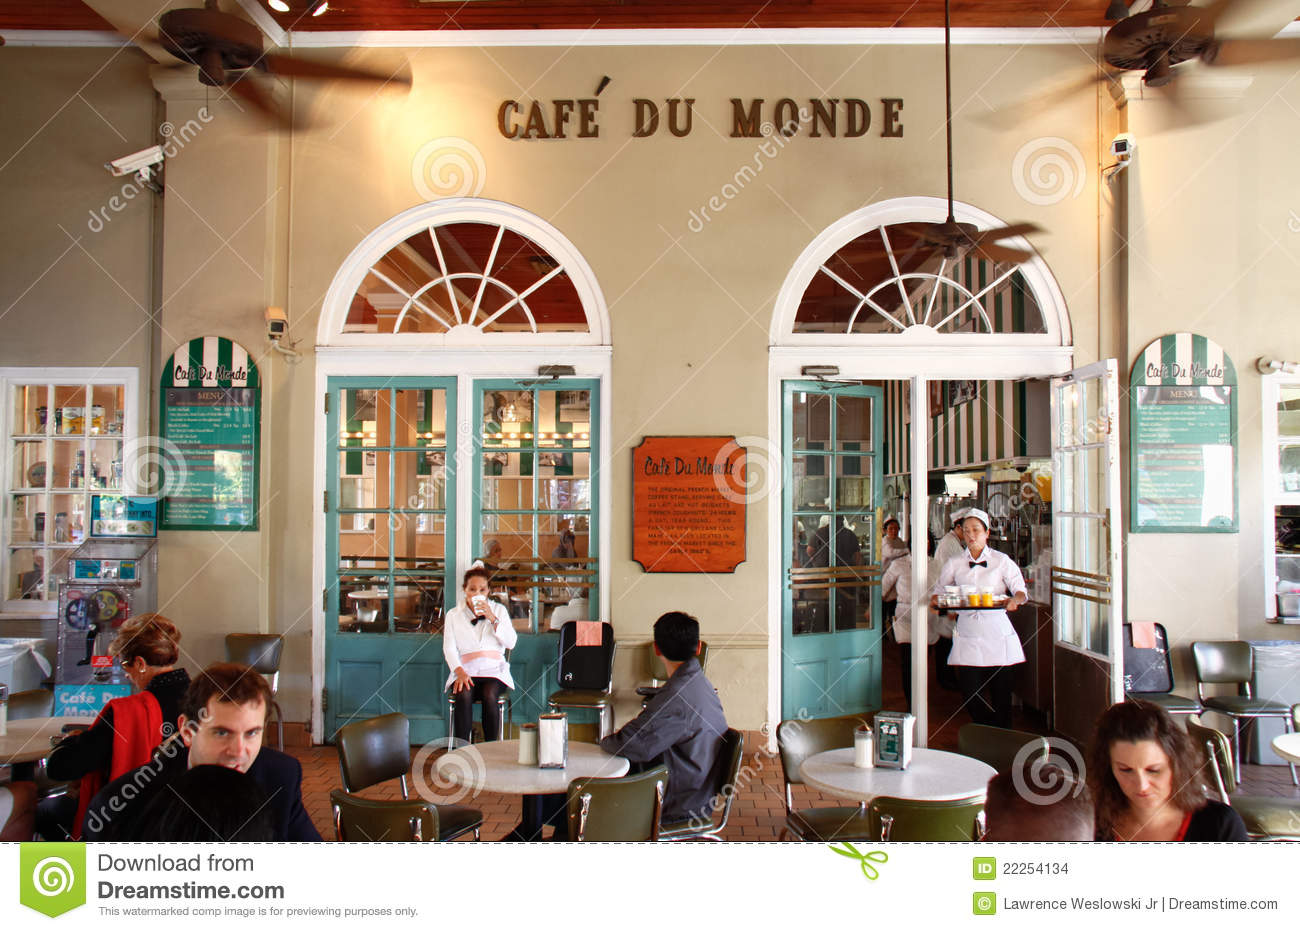 restaurant cuisine du monde paris the ultimate guide to food you must try in new orleans pho. Black Bedroom Furniture Sets. Home Design Ideas